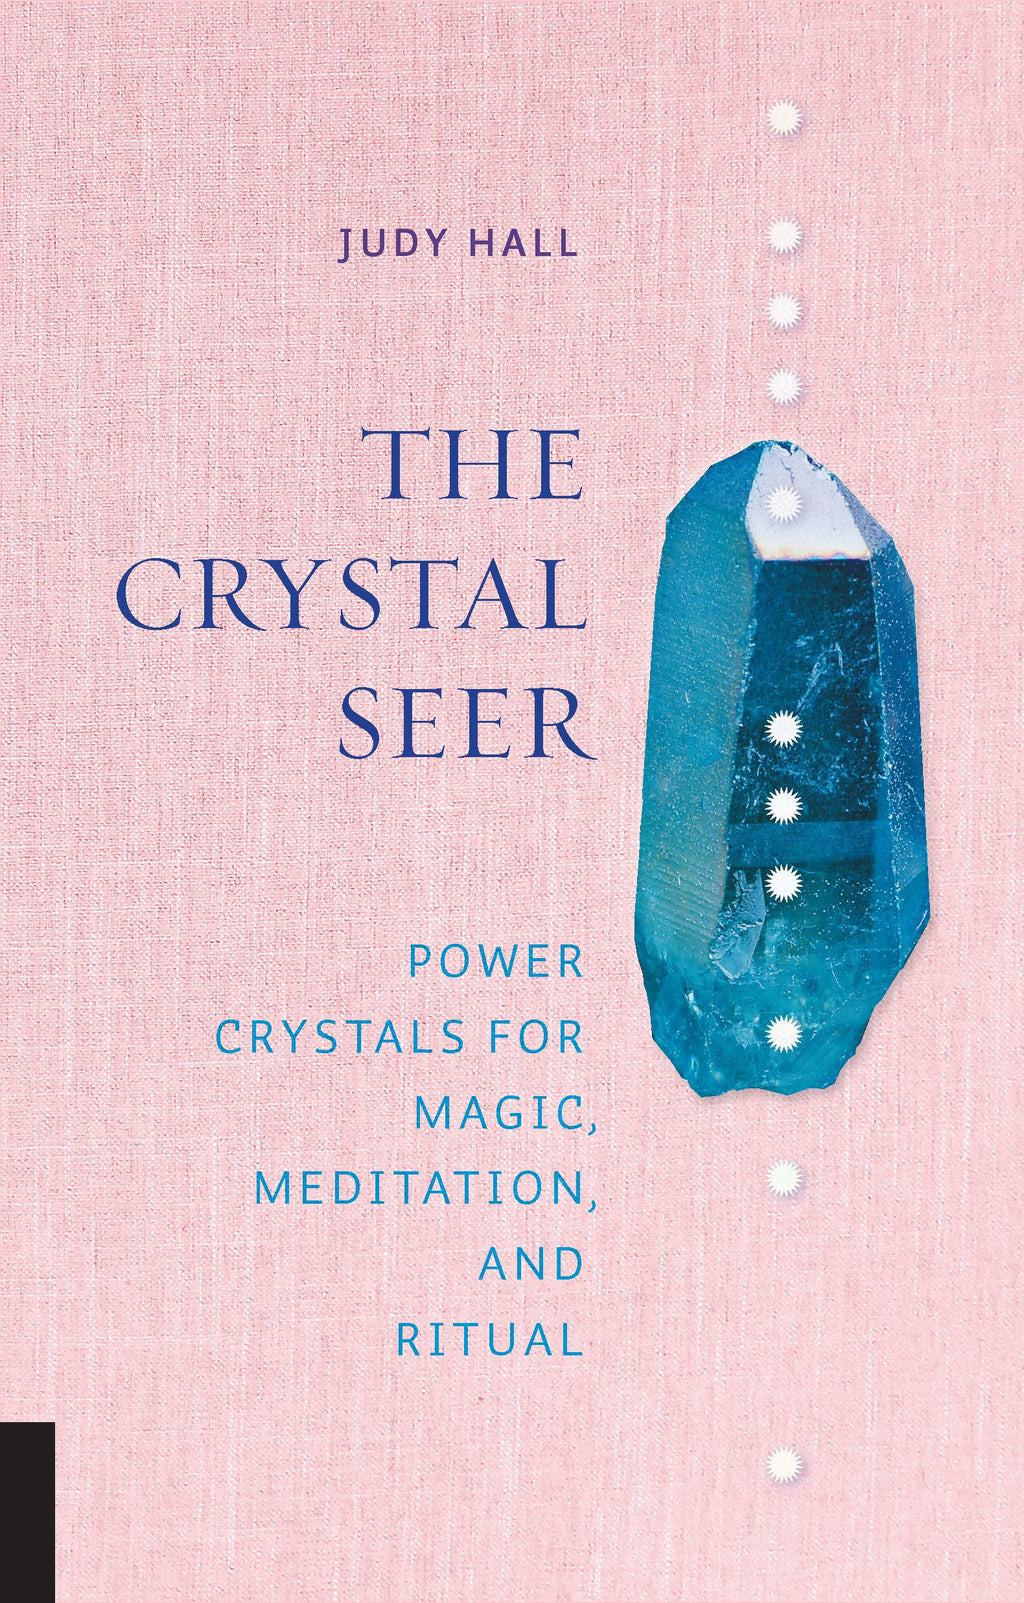 The Crystal Seer: Power Crystals for Magic, Meditation, and Ritual - Wanderlustre